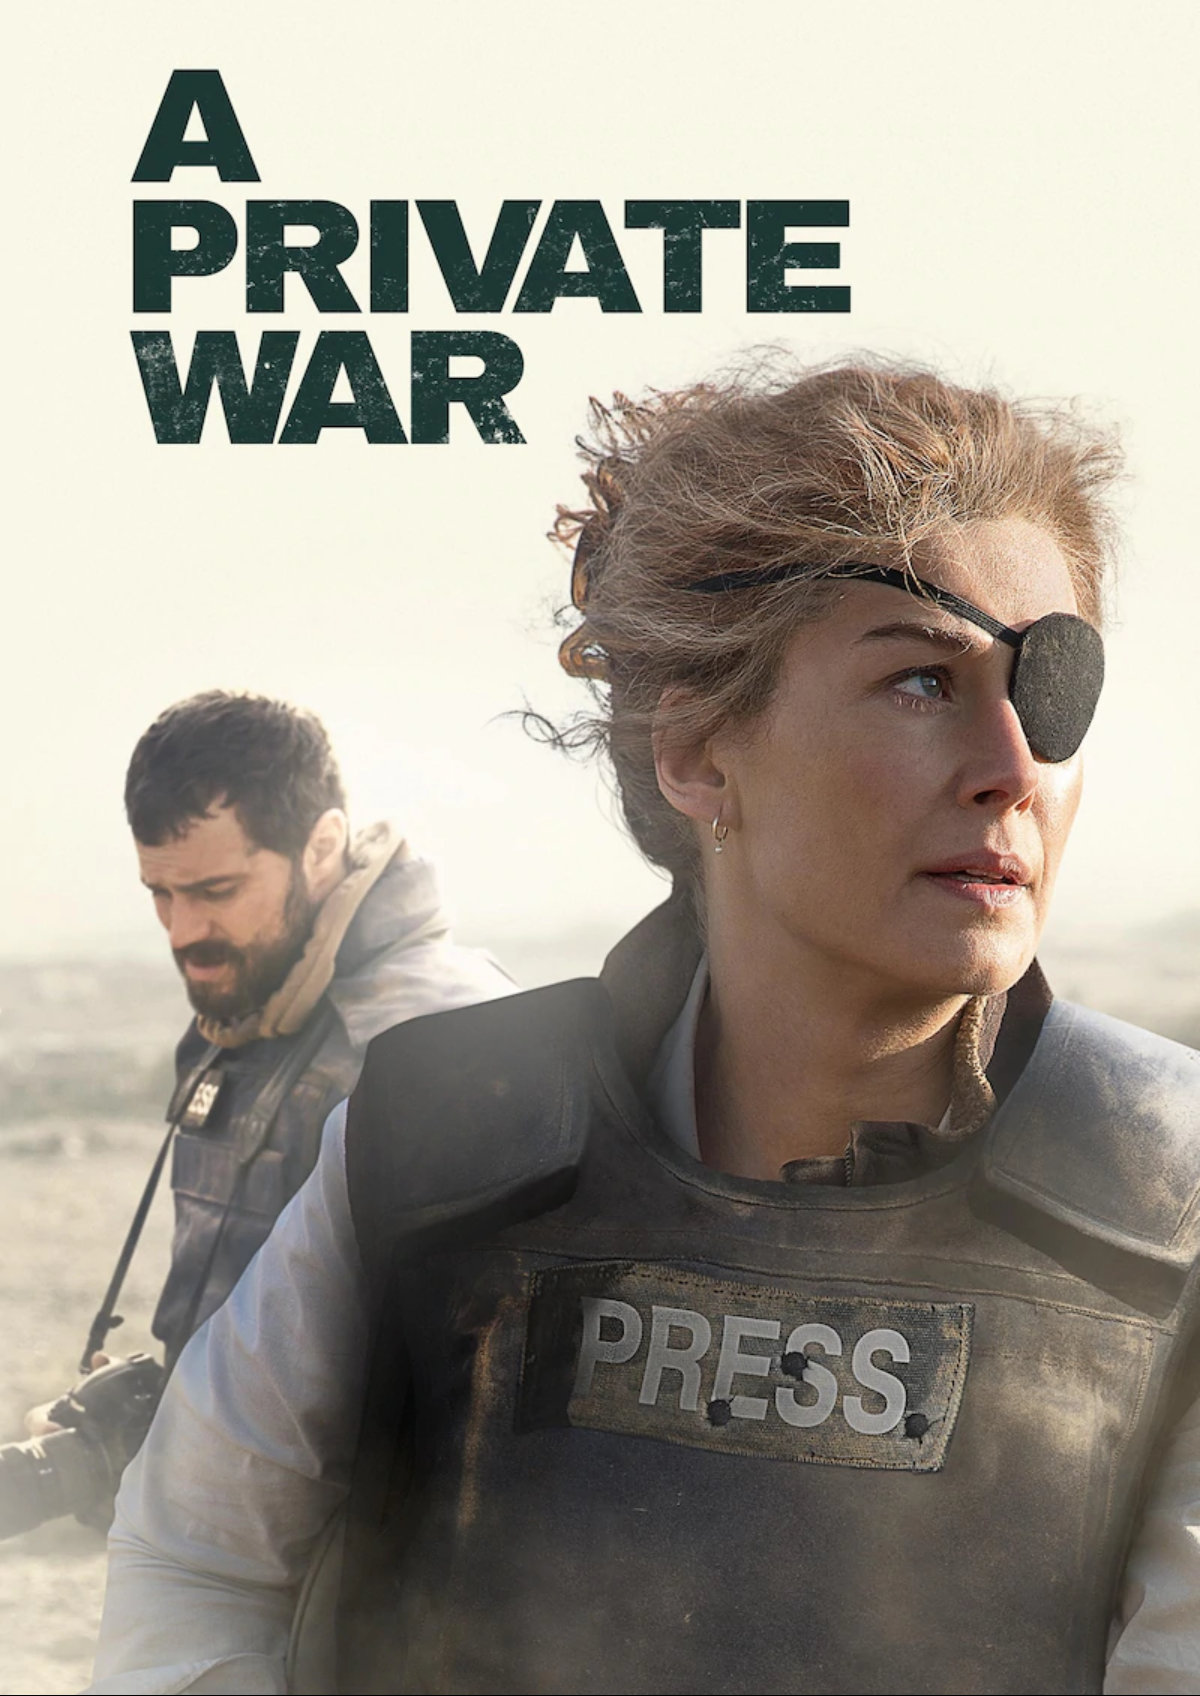 'A Private War' movie poster